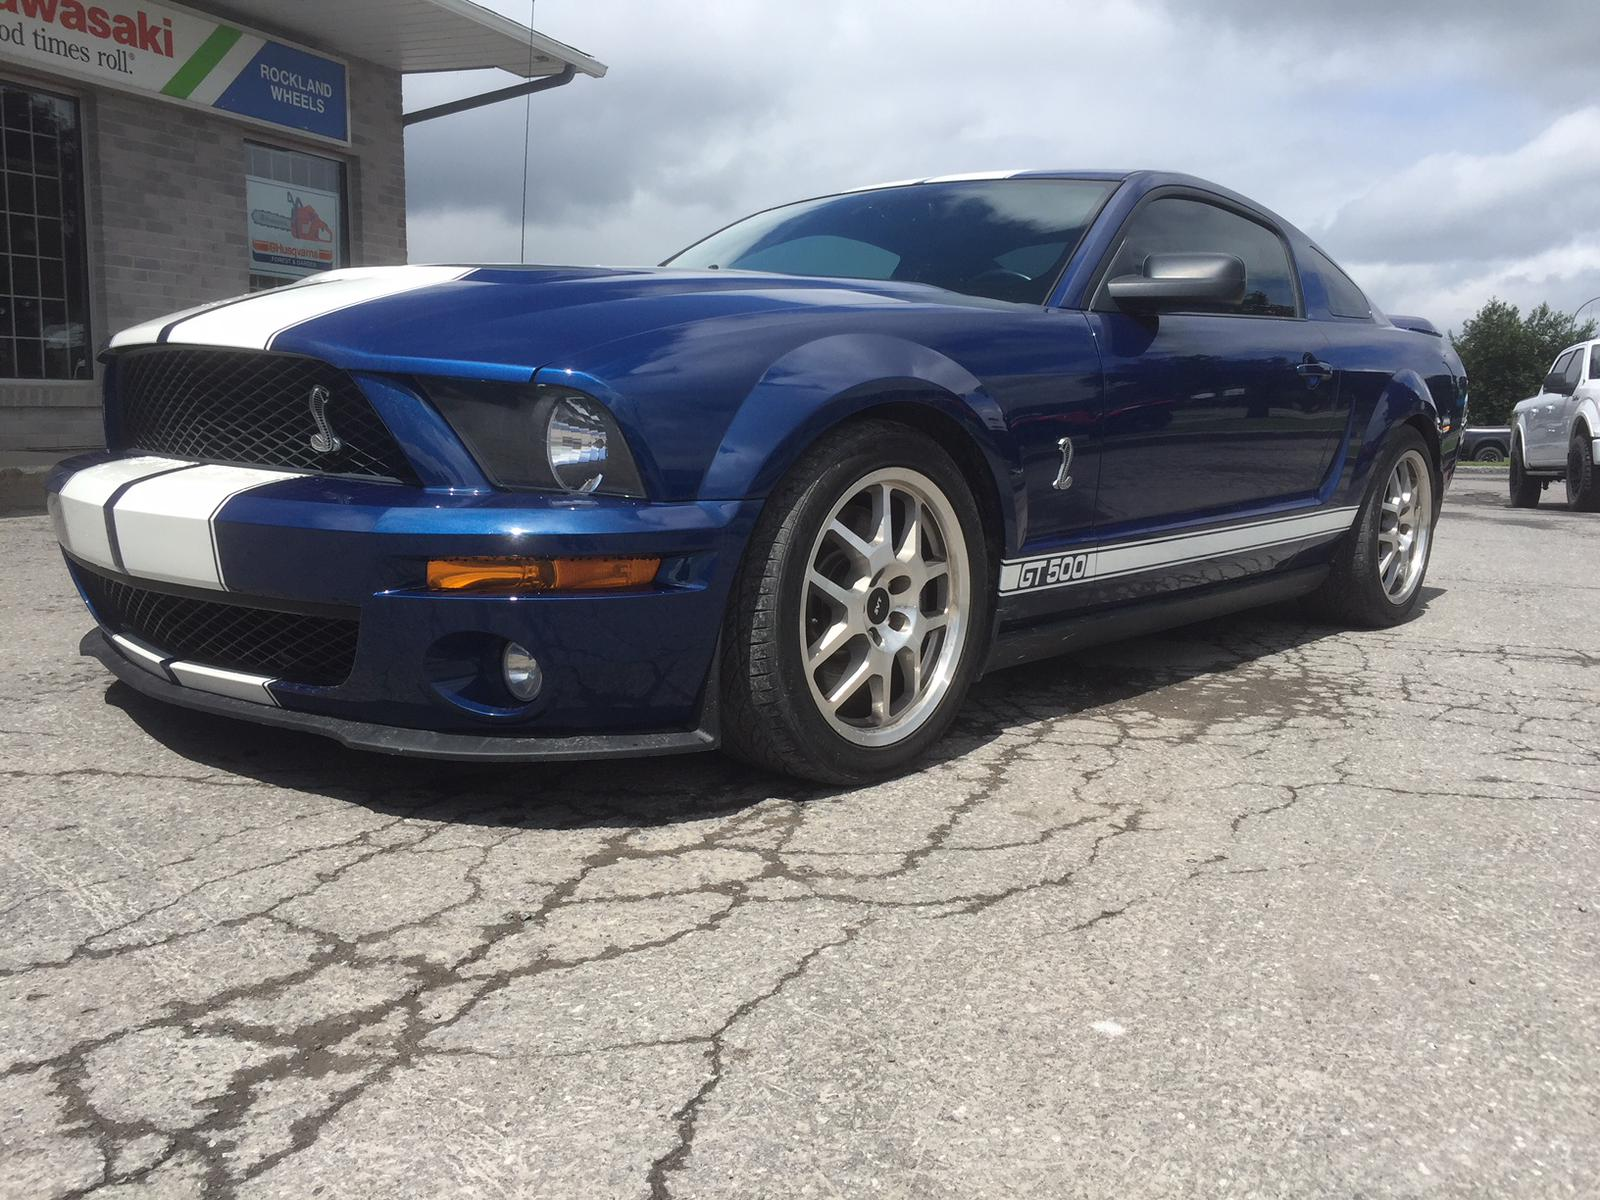 2007 Harley Davidson FORD Mustang GT500 Shelby REDUCED for sale in